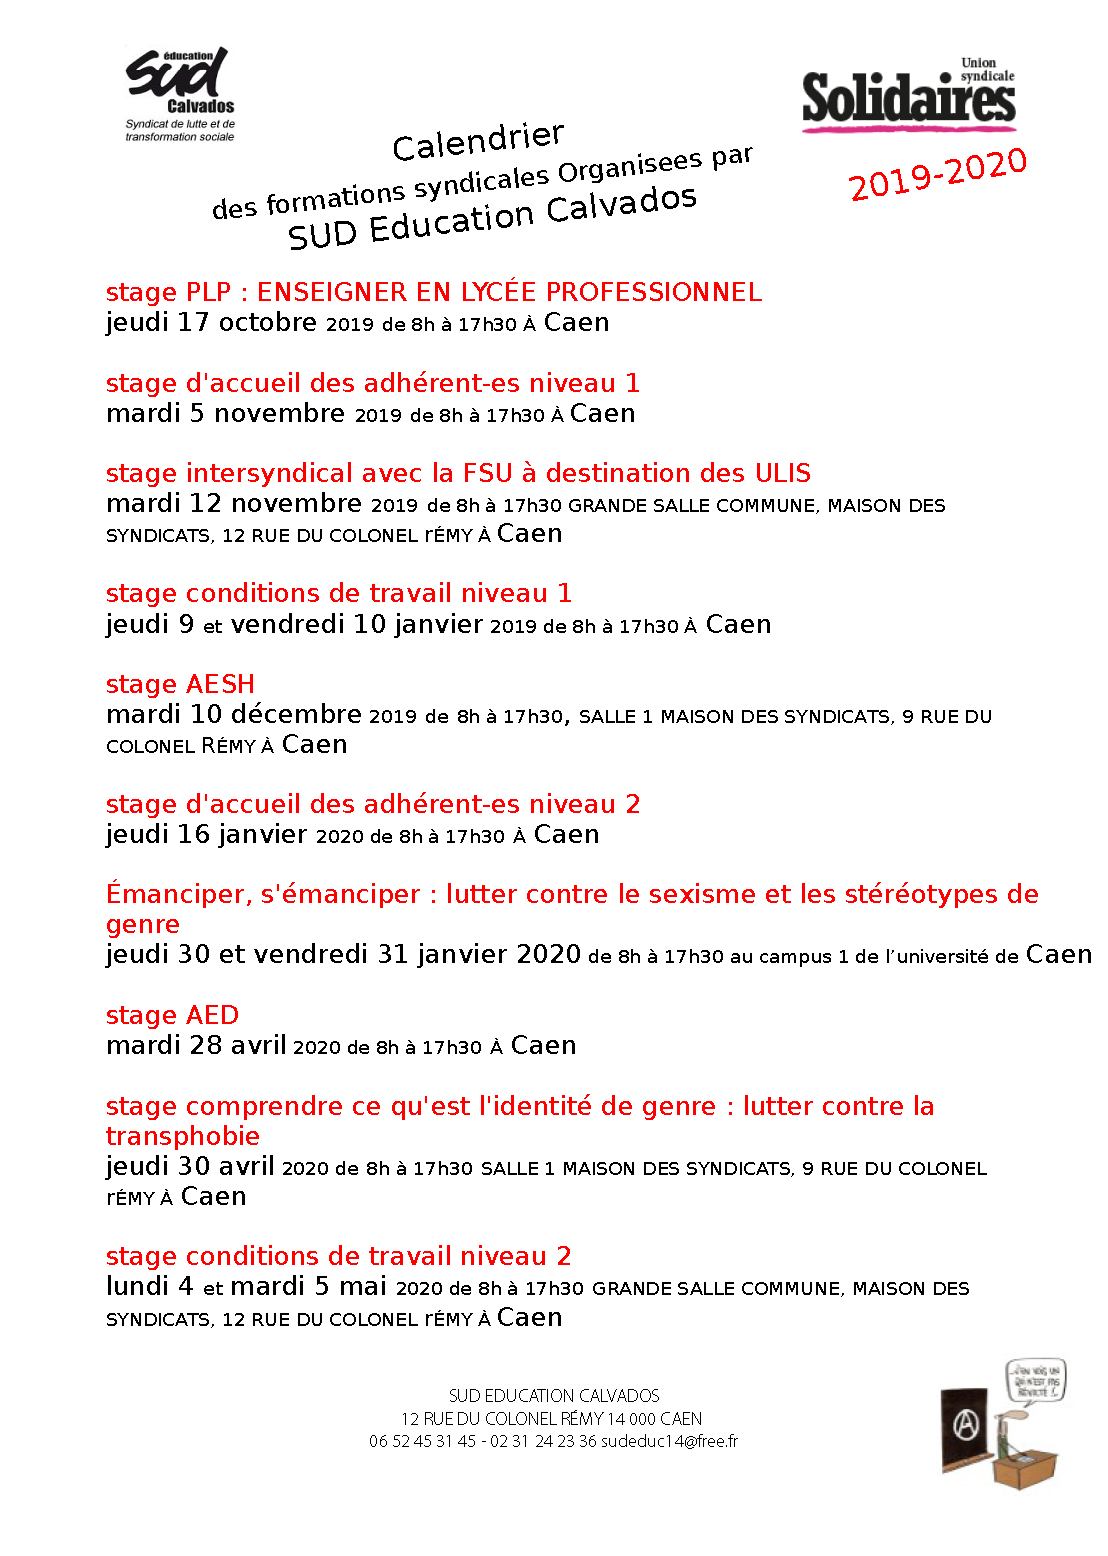 Calendrier des stages SUD Education Calvados 2019-2020